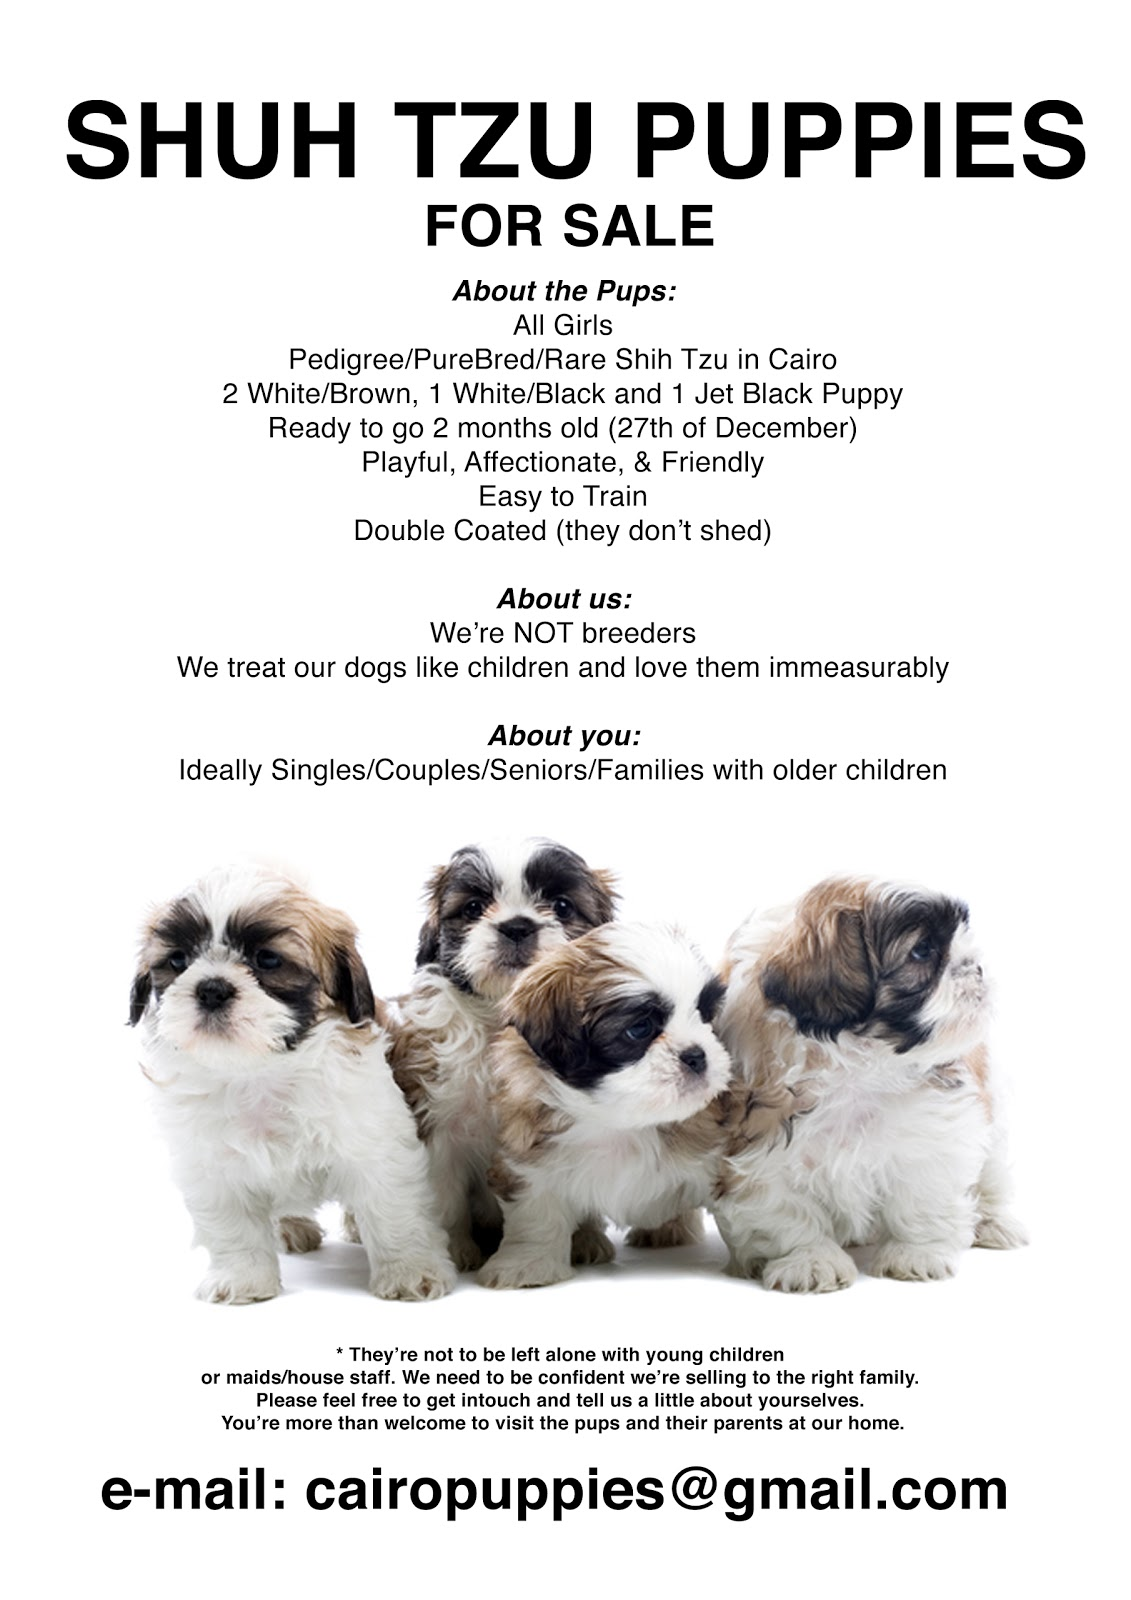 Shih Tzu Puppies For Sale Flyer Info